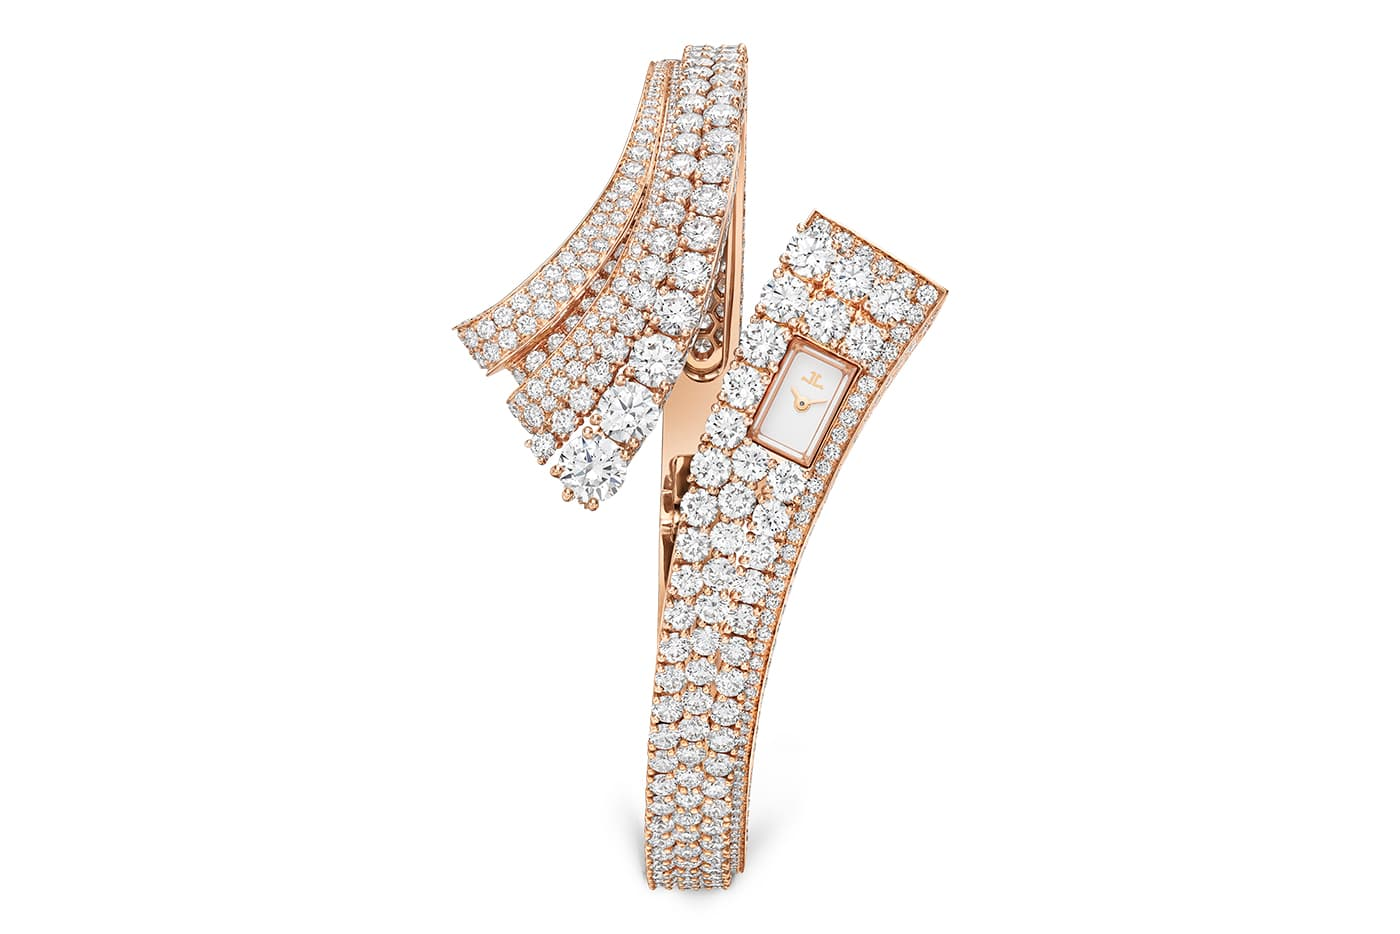 Jaeger-LeCoultre's exquisite 101 Bangle was inspired by the bold geometry of the Art Deco era